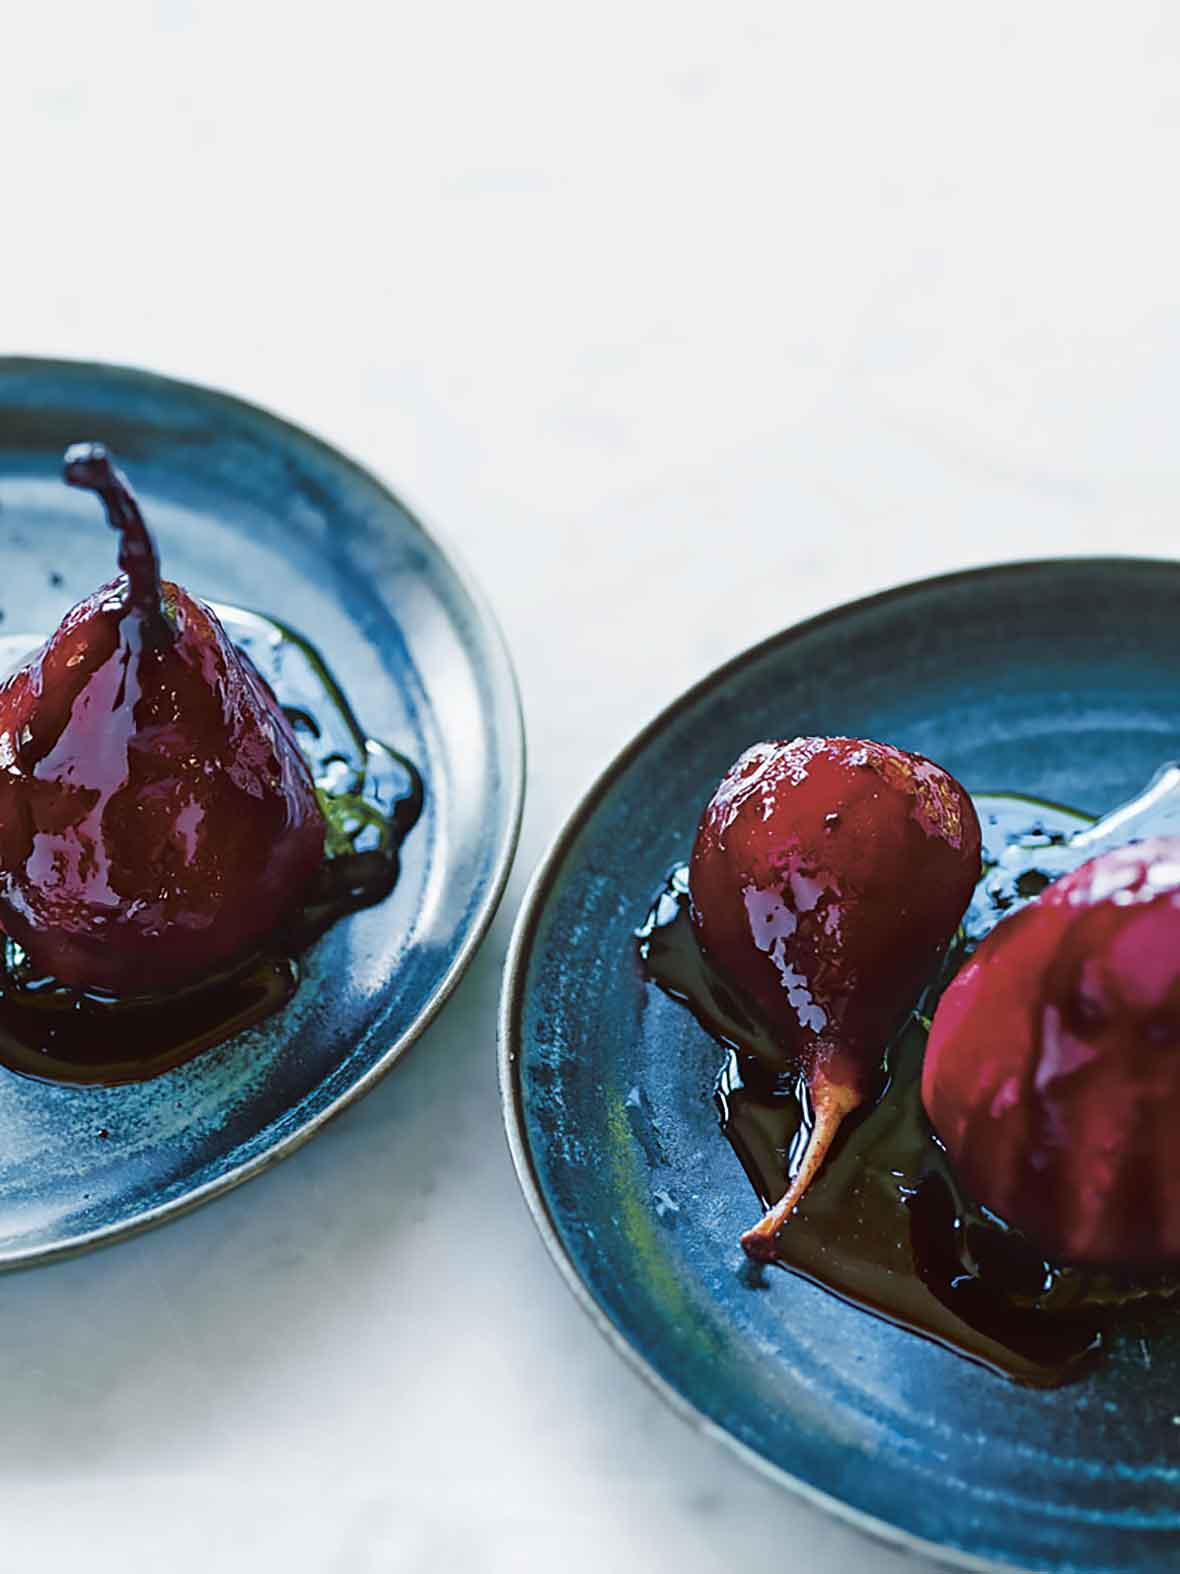 Two blue plates with red wine poached pears and a drizzle of sauce over them.